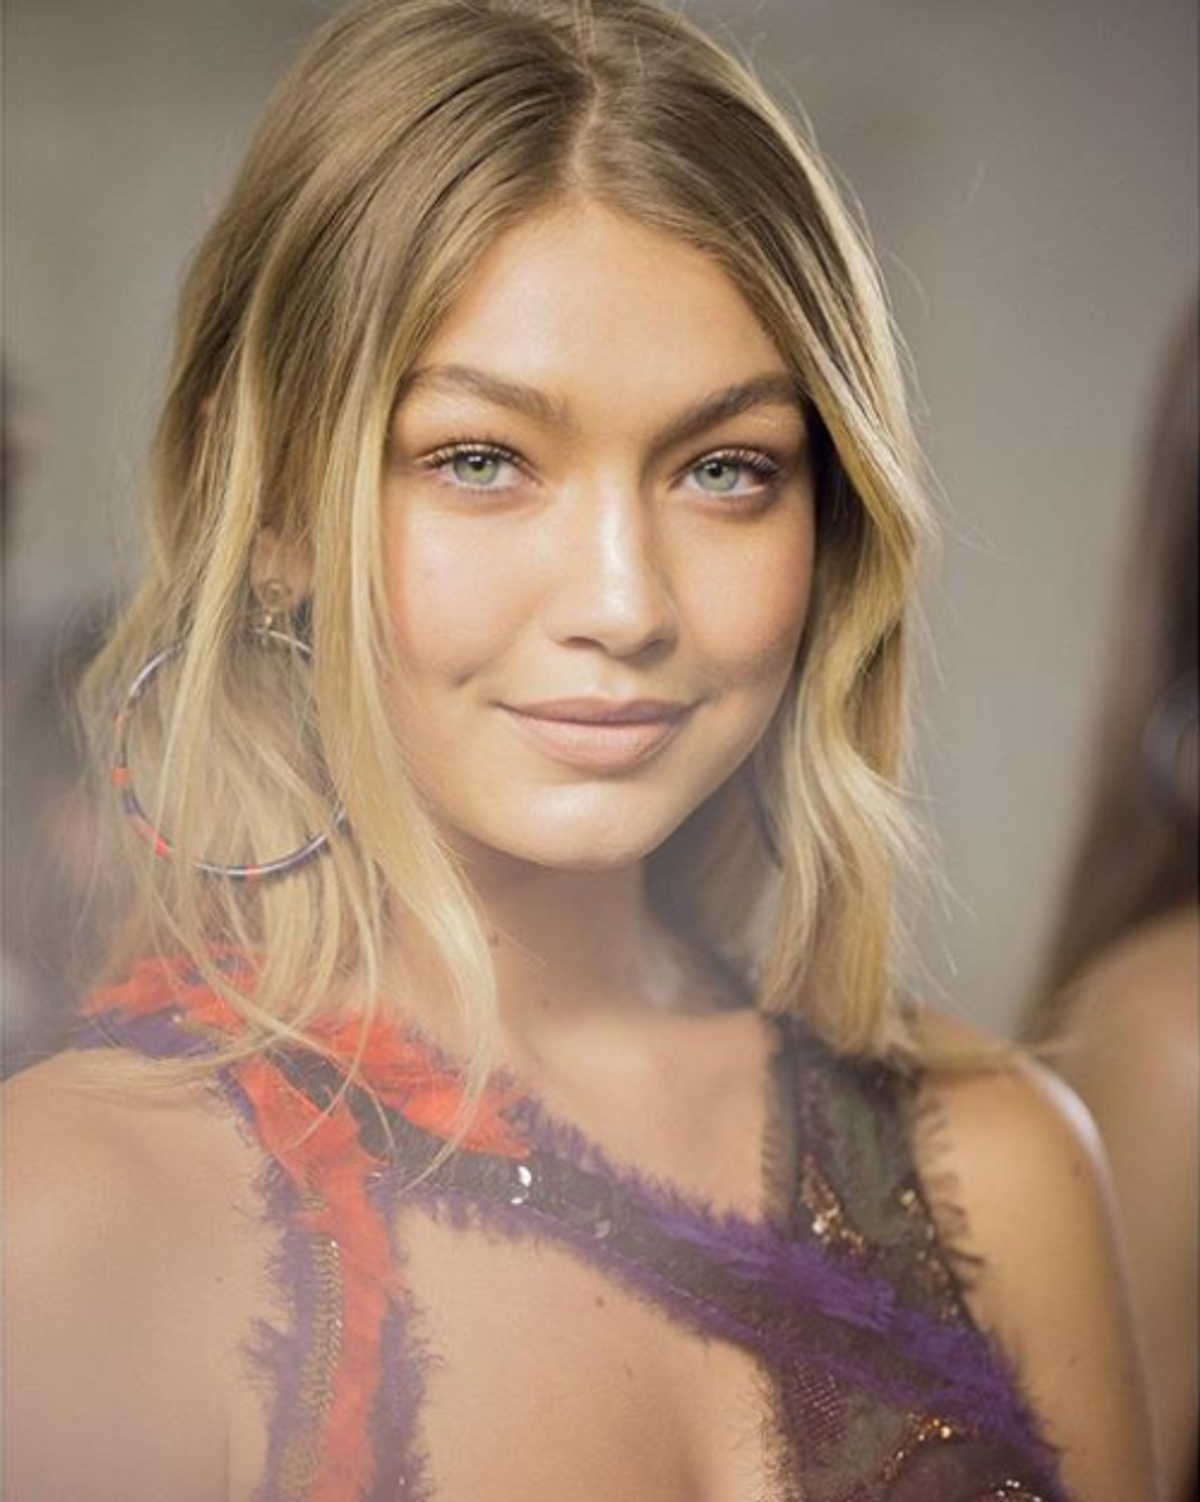 Fit For The Runway: Gigi Hadid Stands Up Against Body Shamers